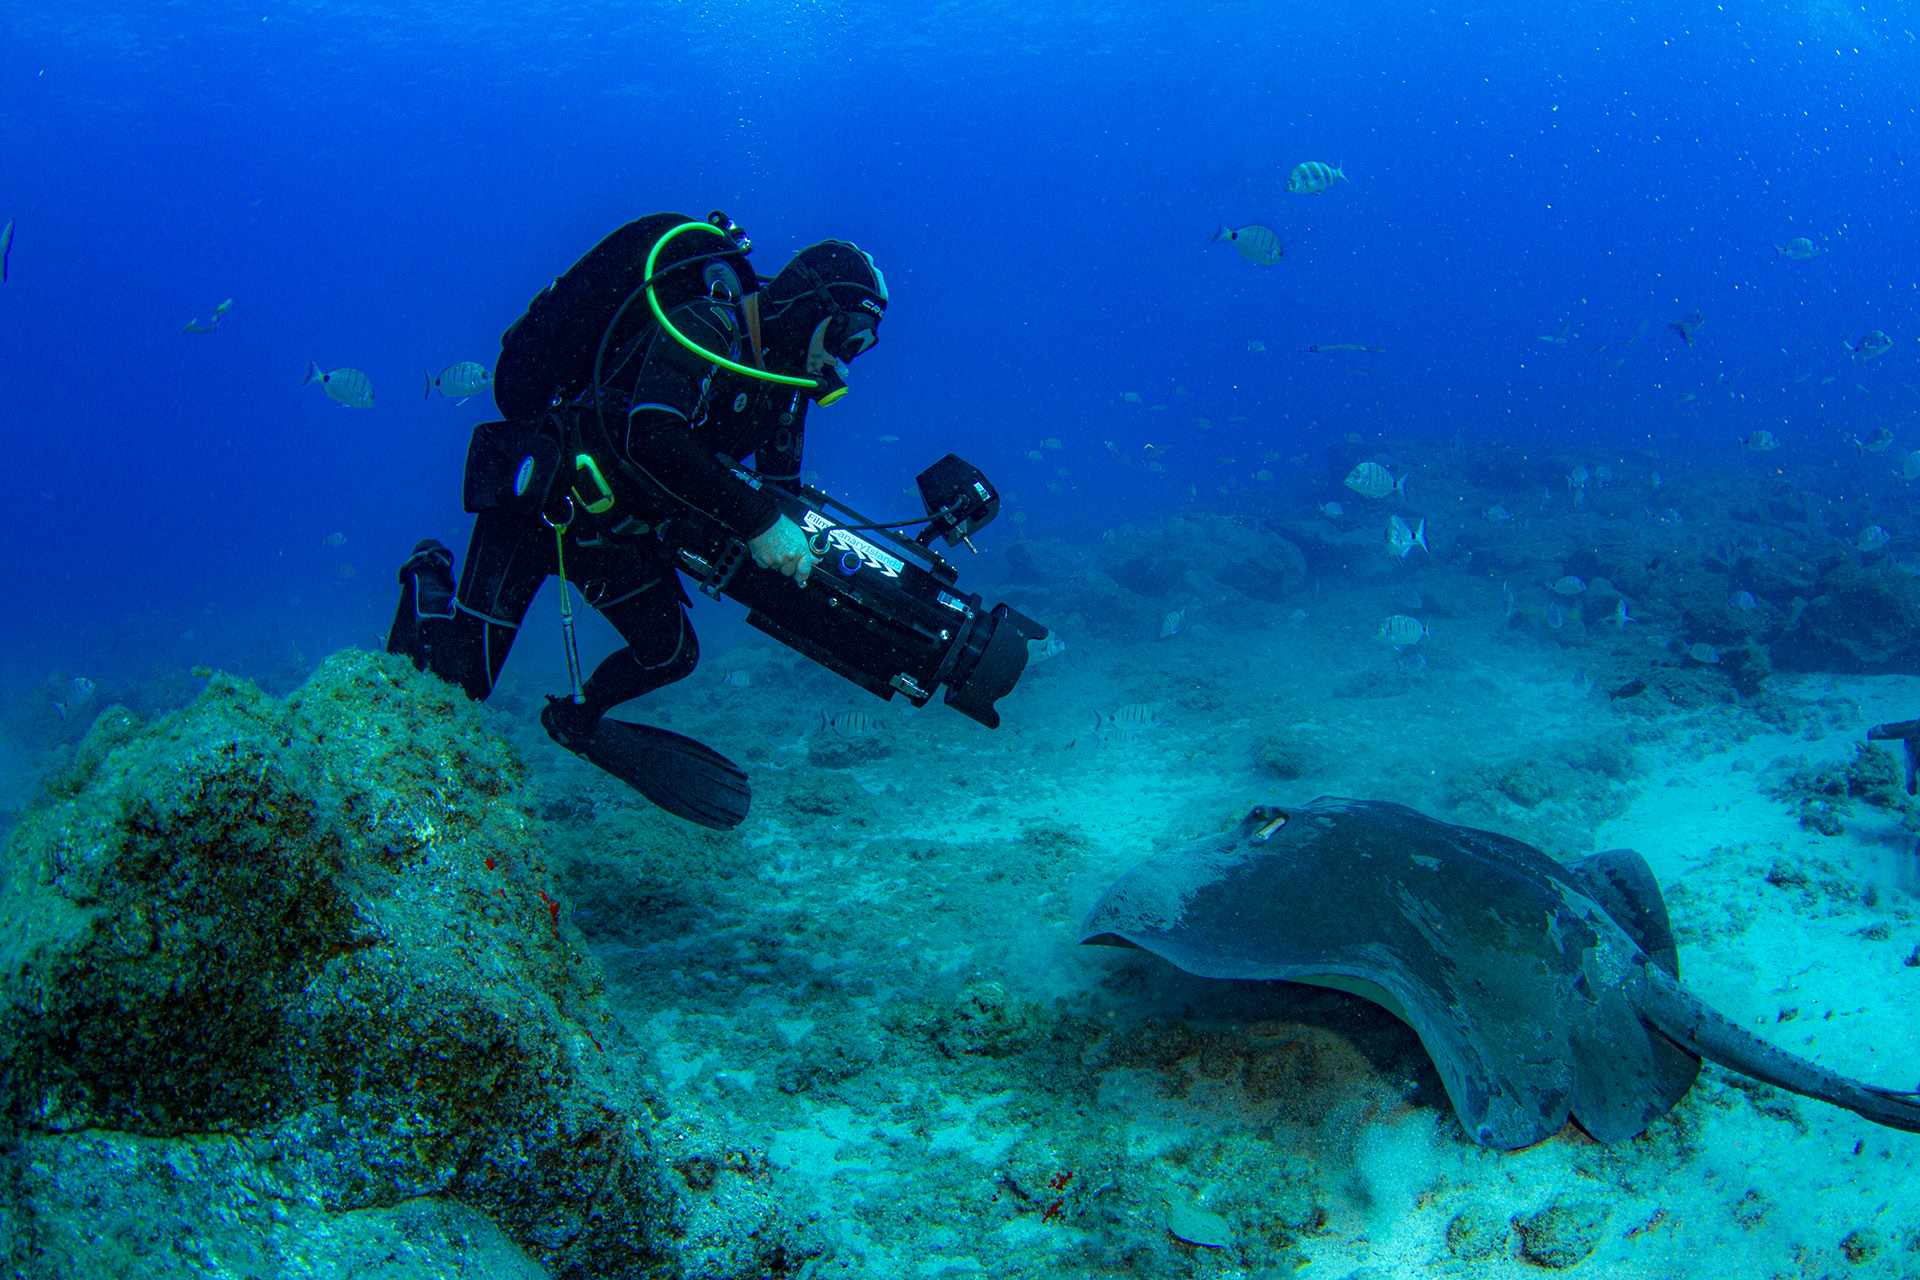 Underwater Director of Photography